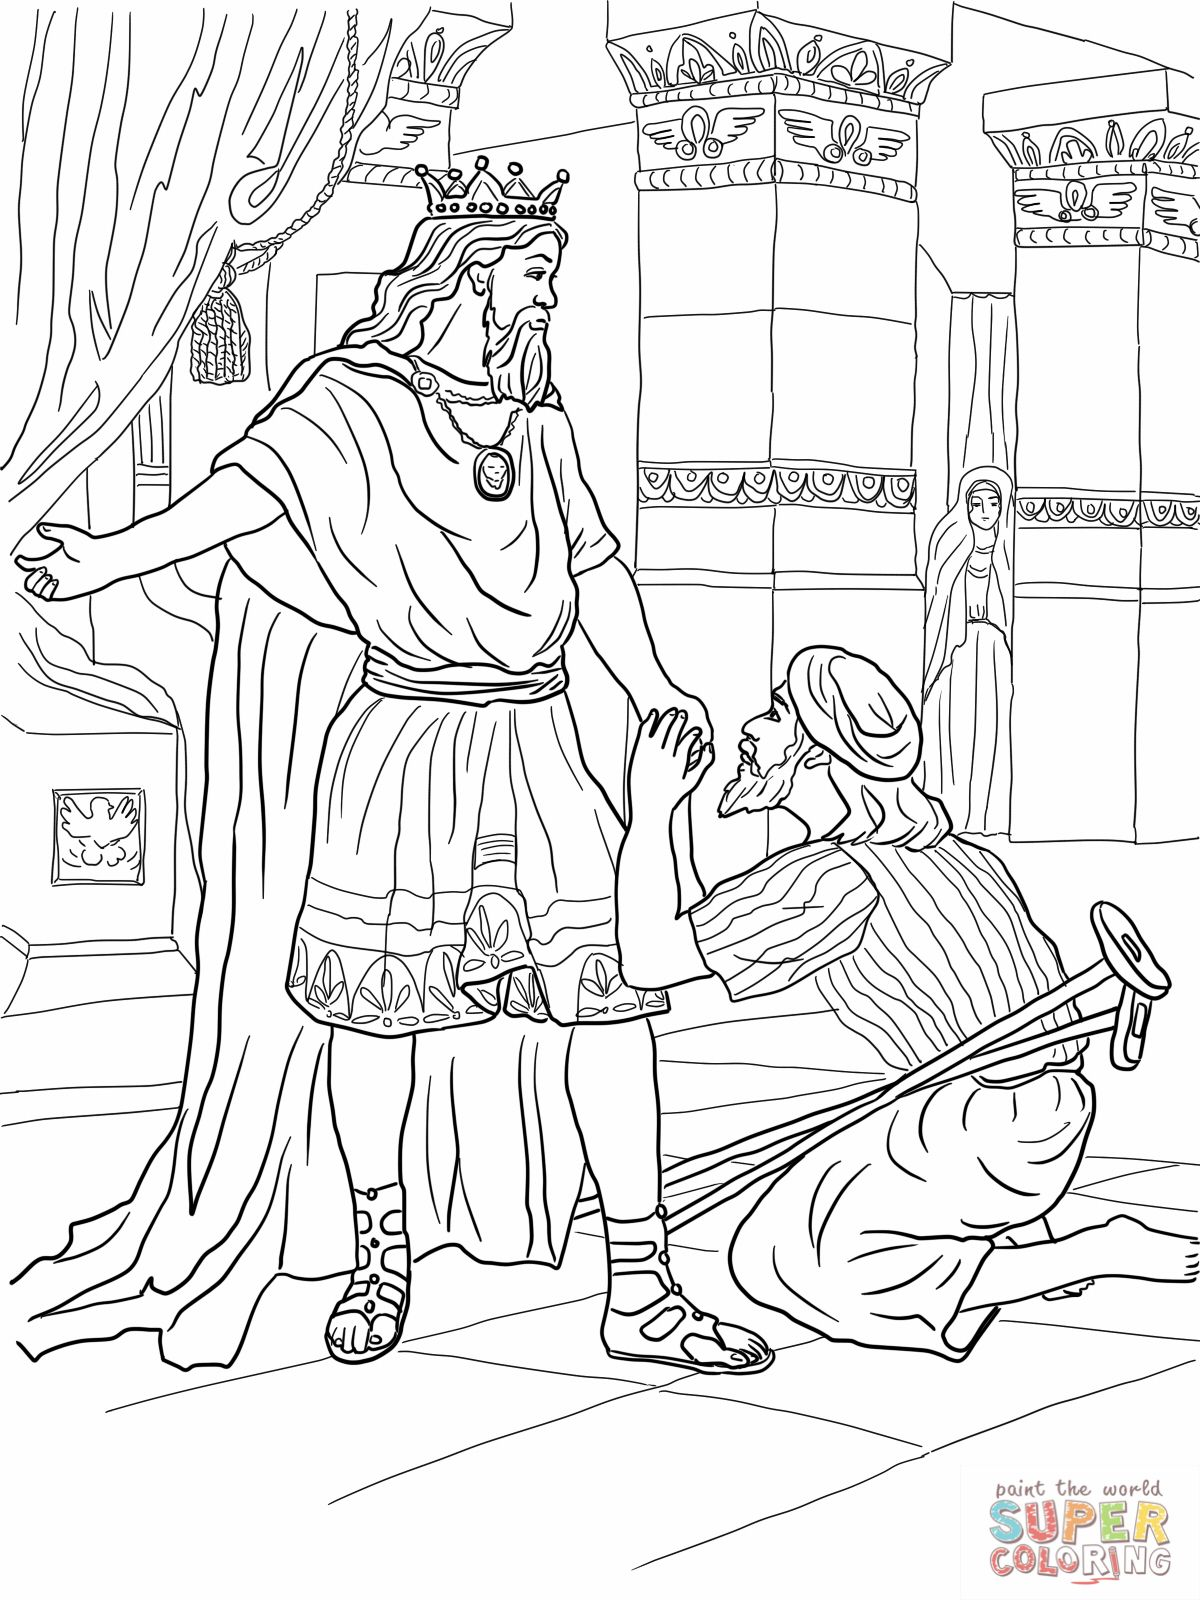 Coloring pages for jonathan and david - Mephibosheth Coloring Pages David Helps Mephibosheth Coloring Online